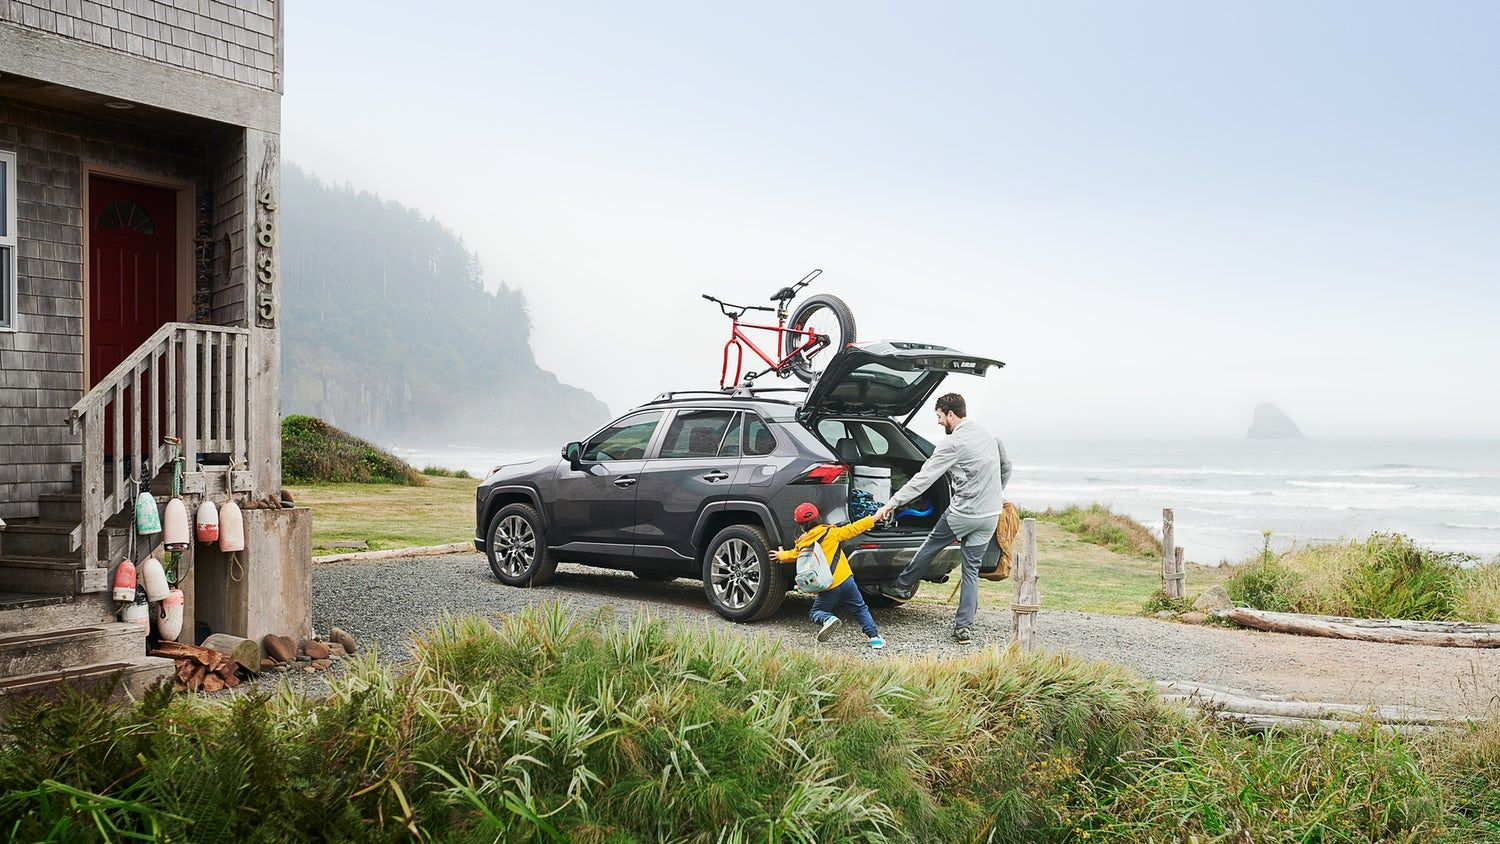 View 2019 Toyota RAV4 interior photos plus RAV4 exterior photos, and get ready to conquer more than the commute.